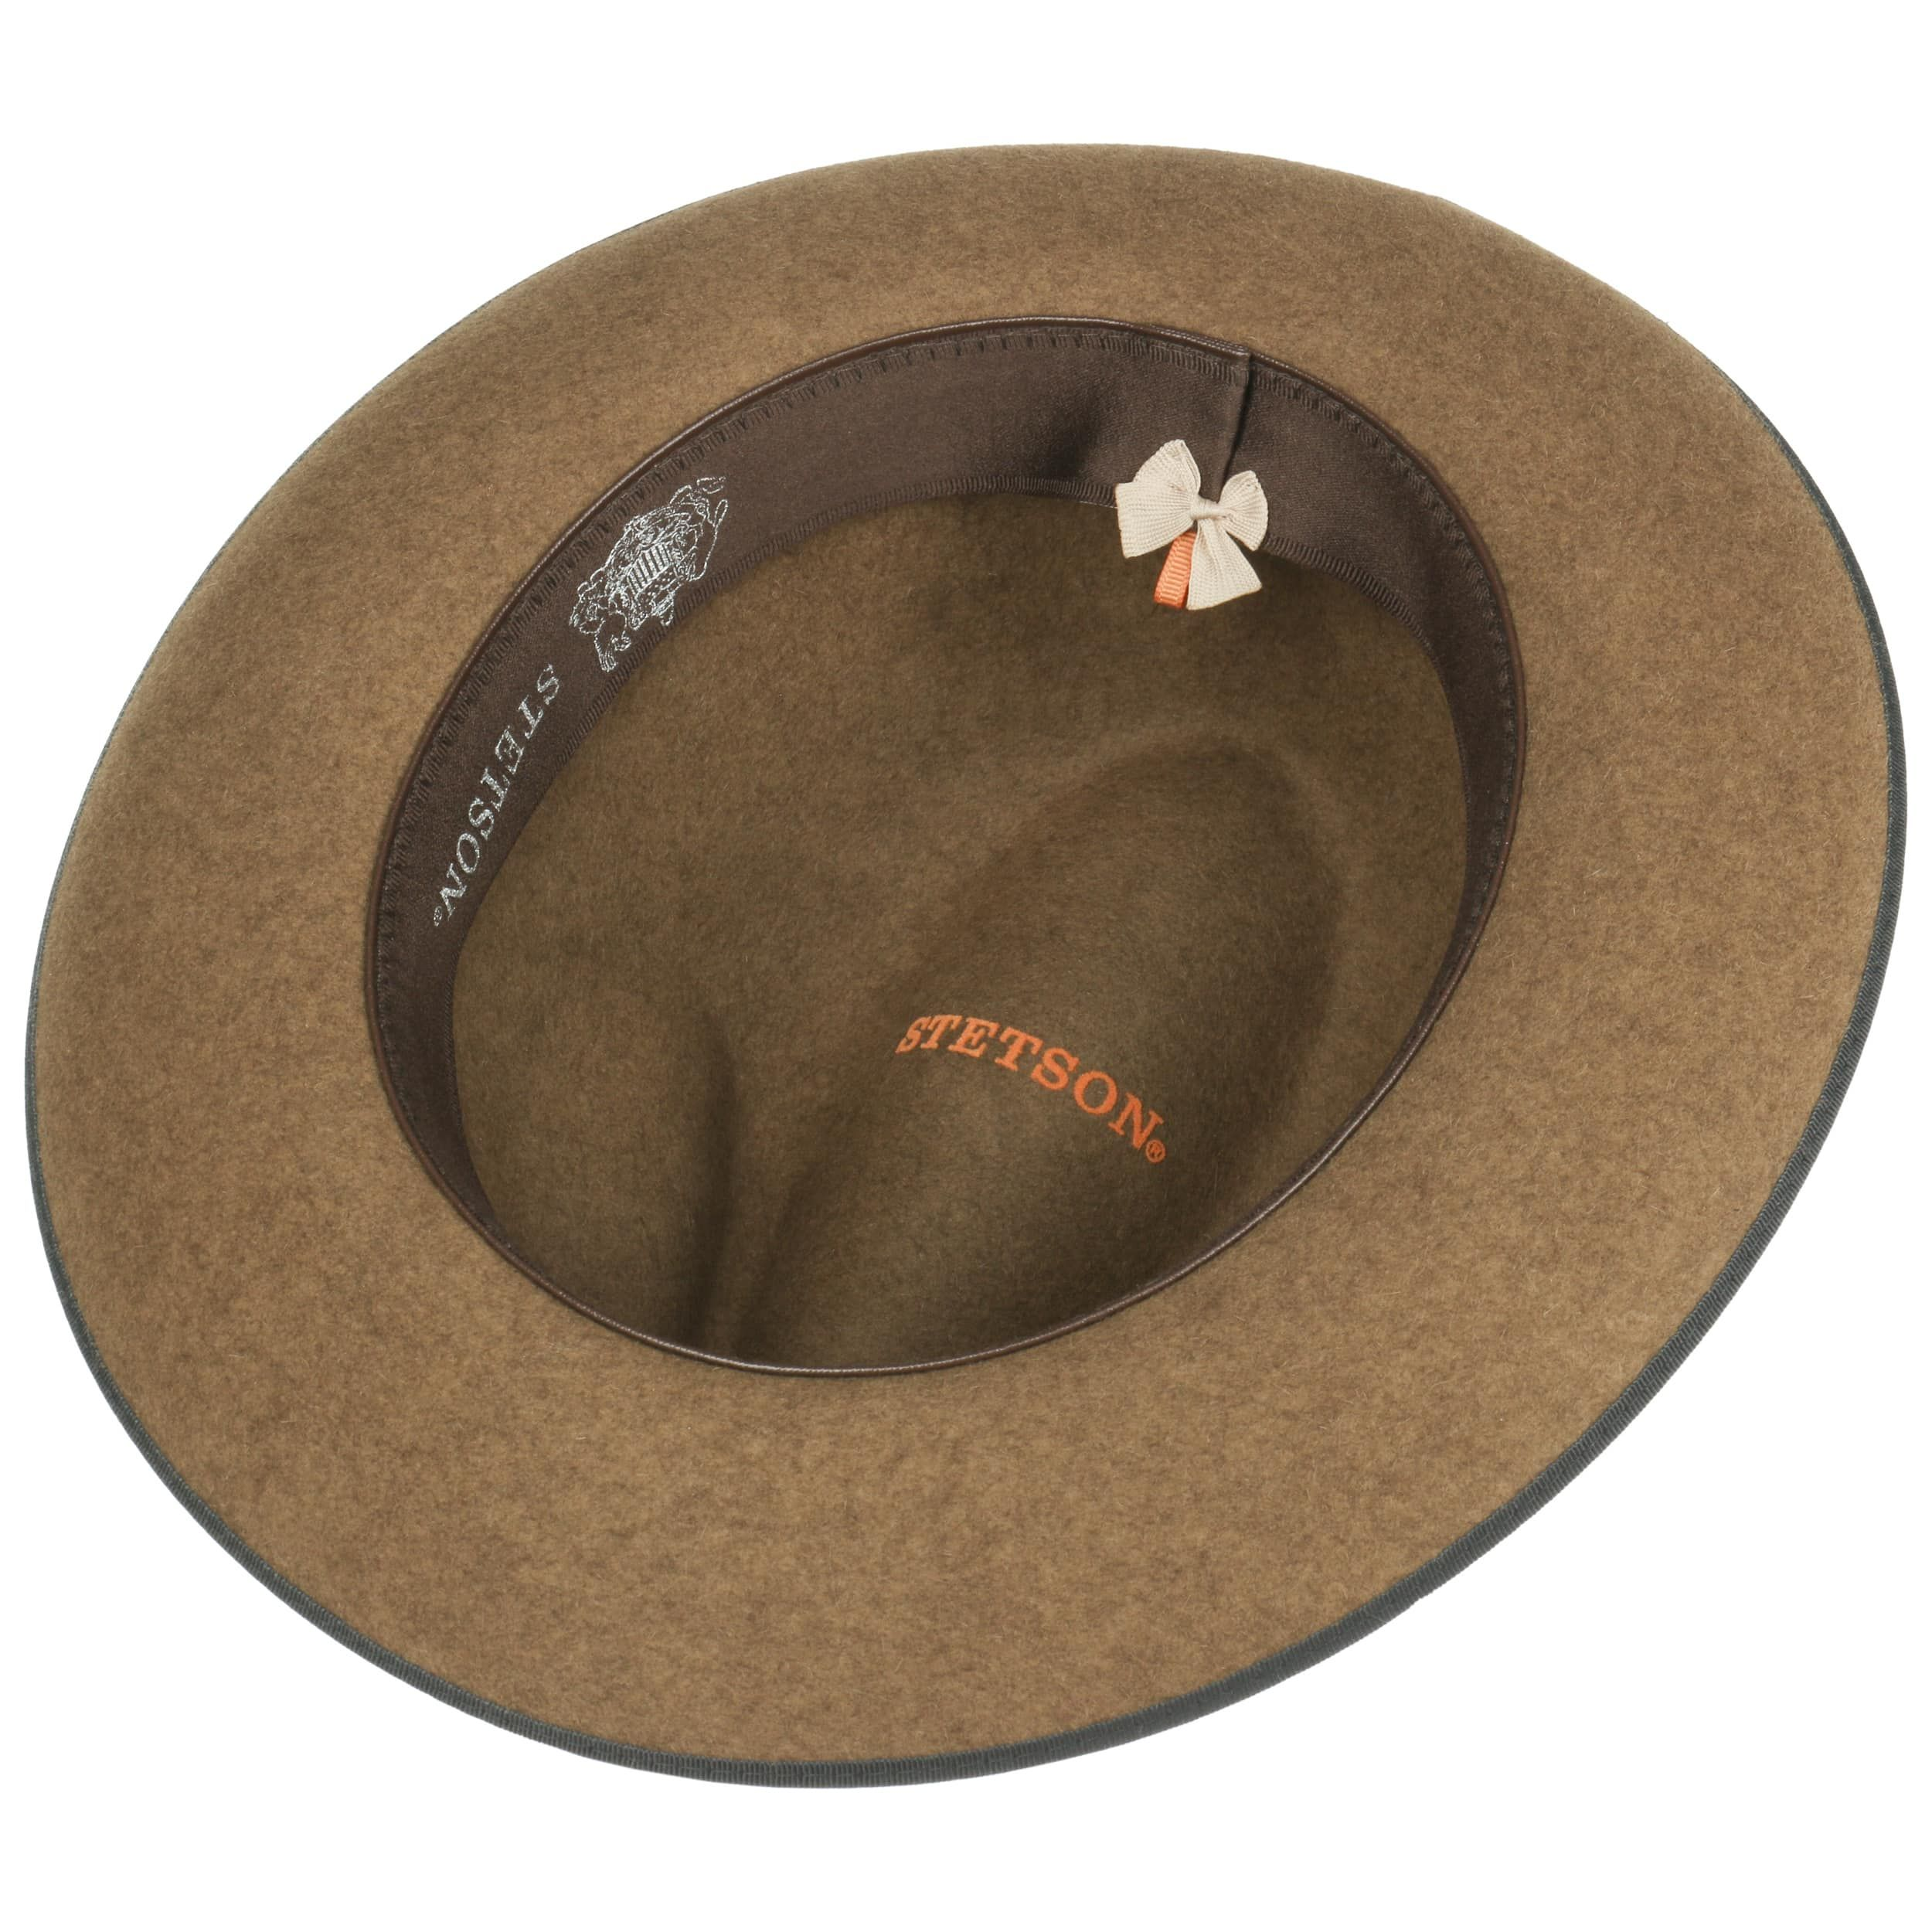 Larendale Fur Felt Hat brown